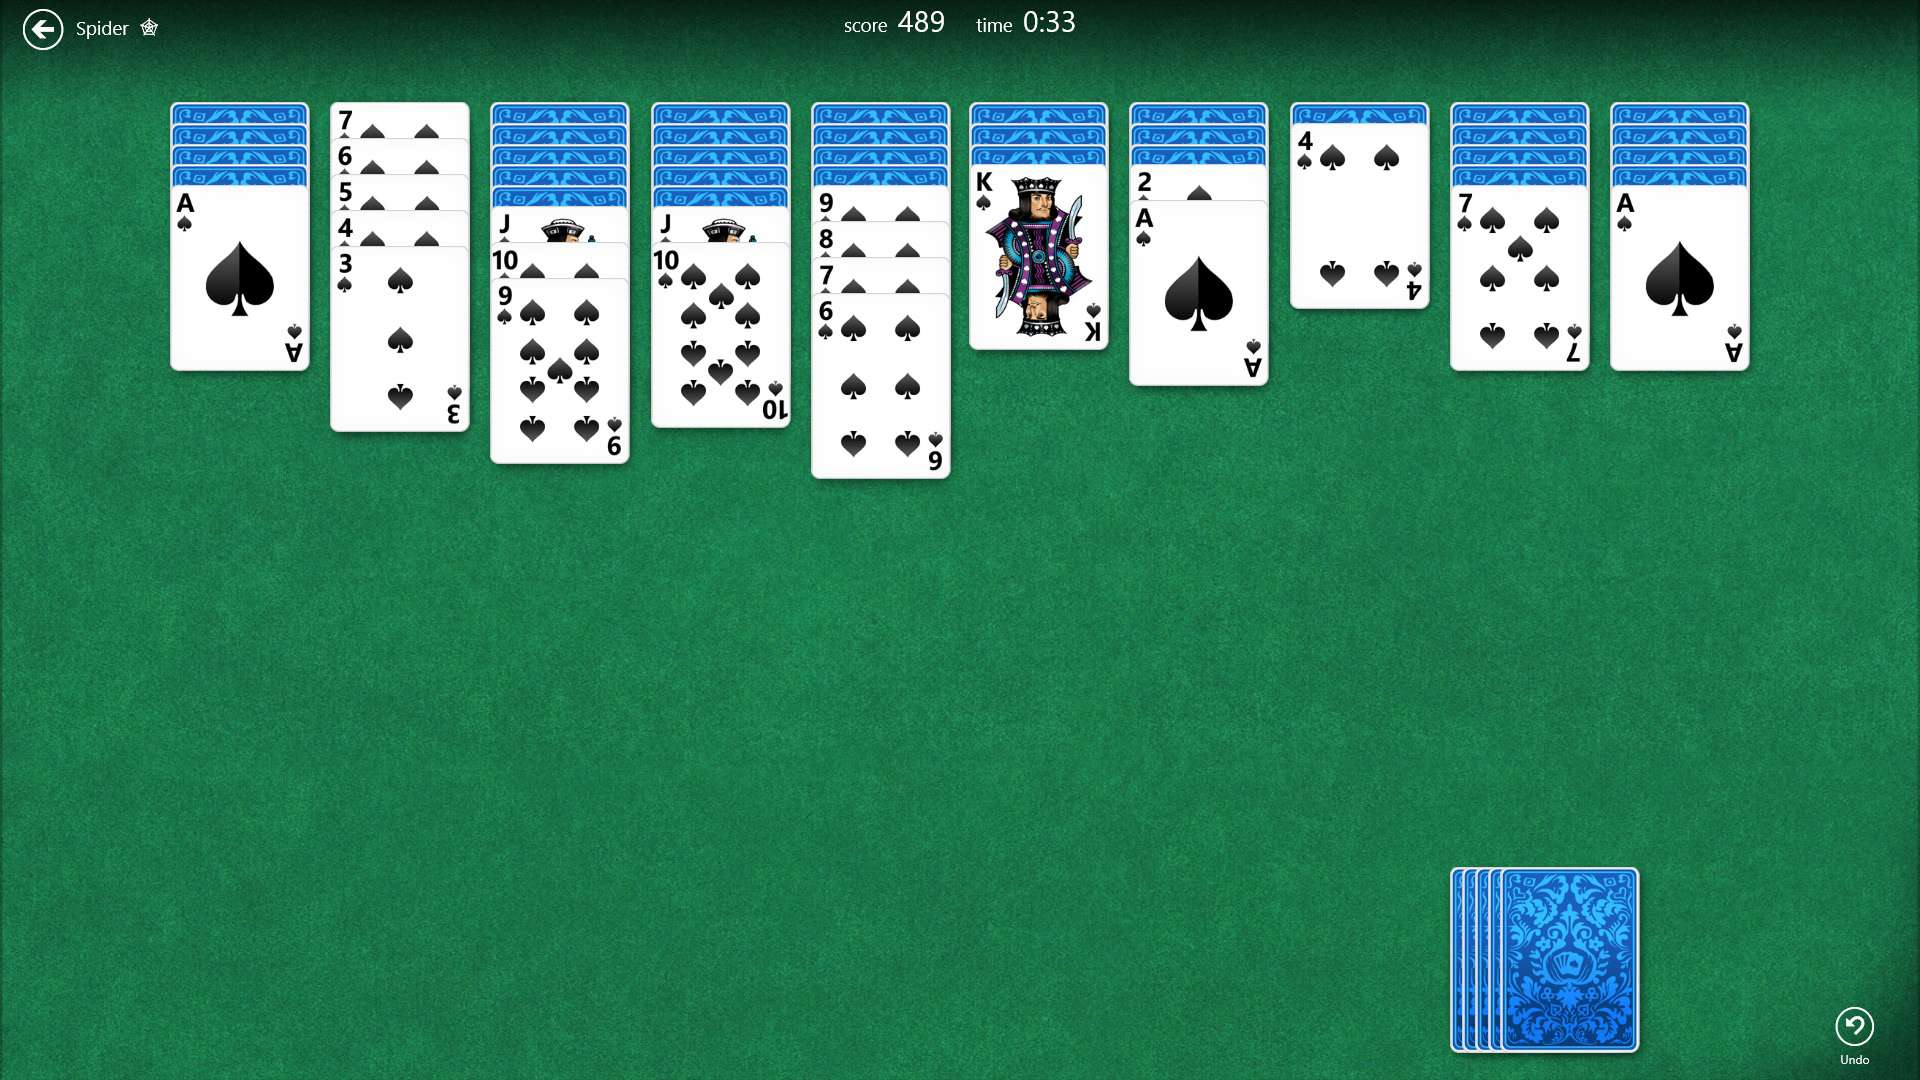 скачать spider solitaire windows 7 бесплатно